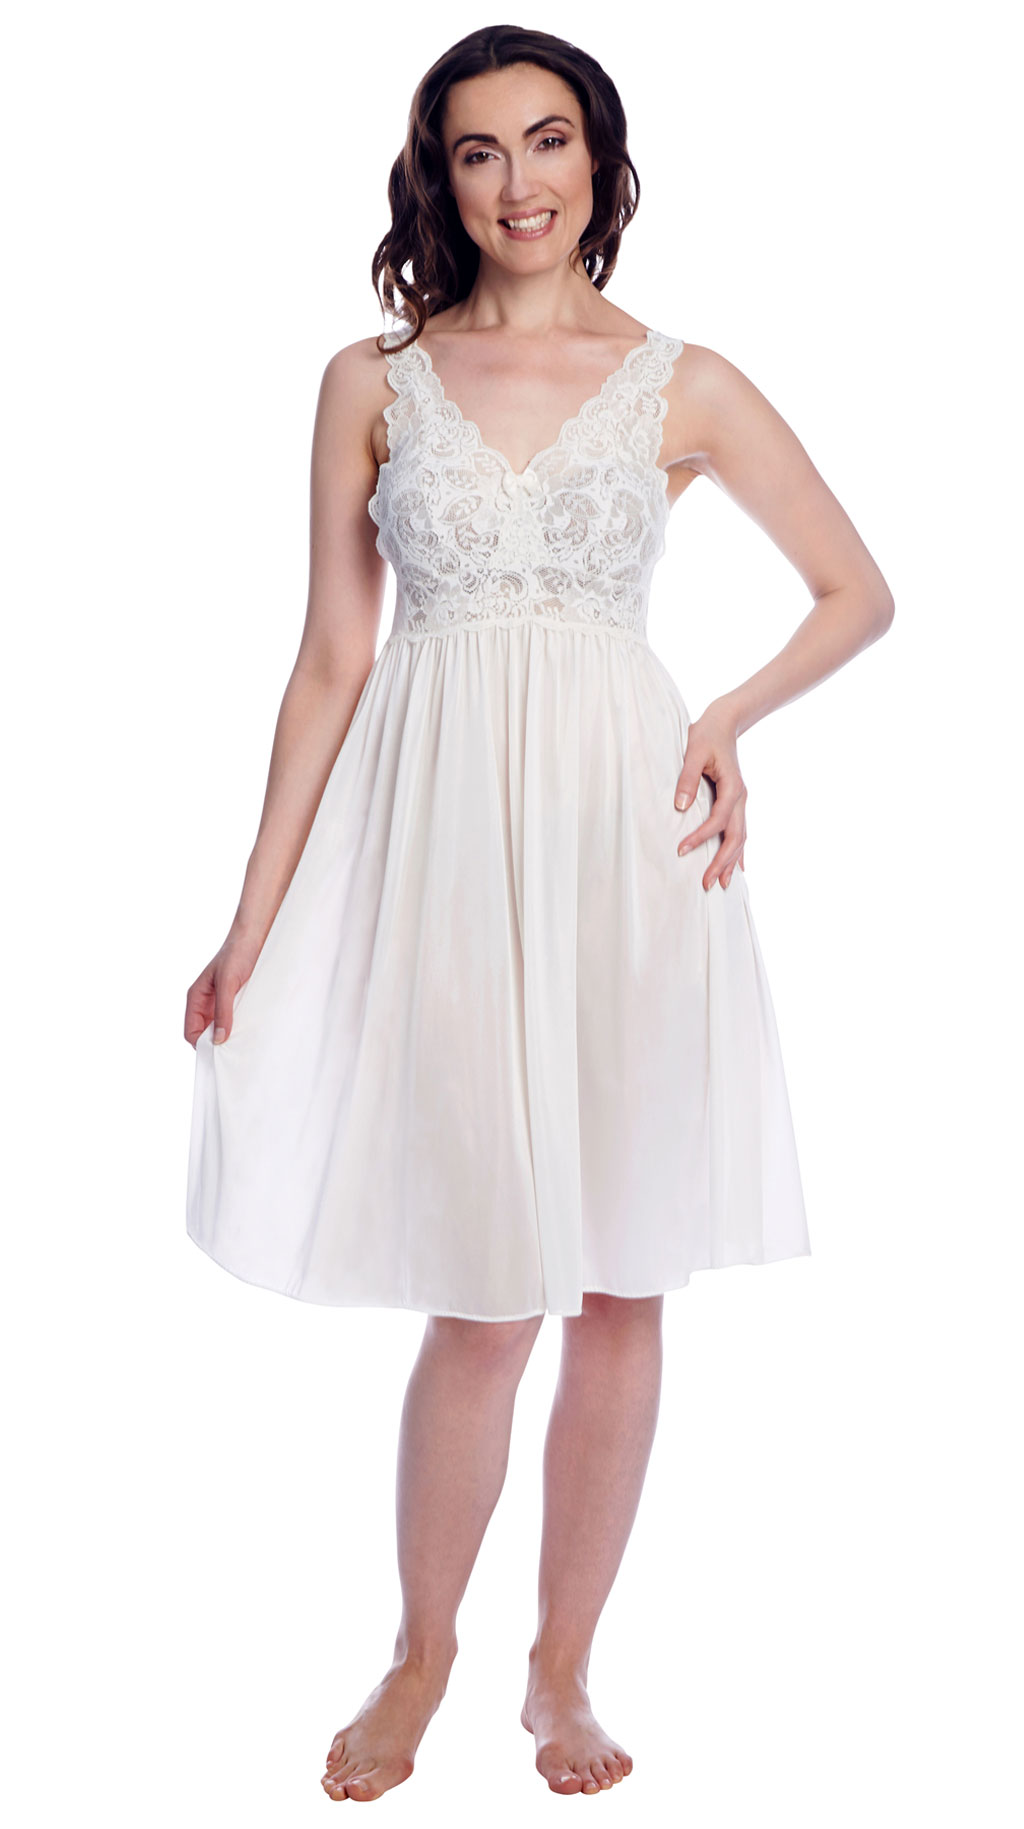 white babydoll nightgown